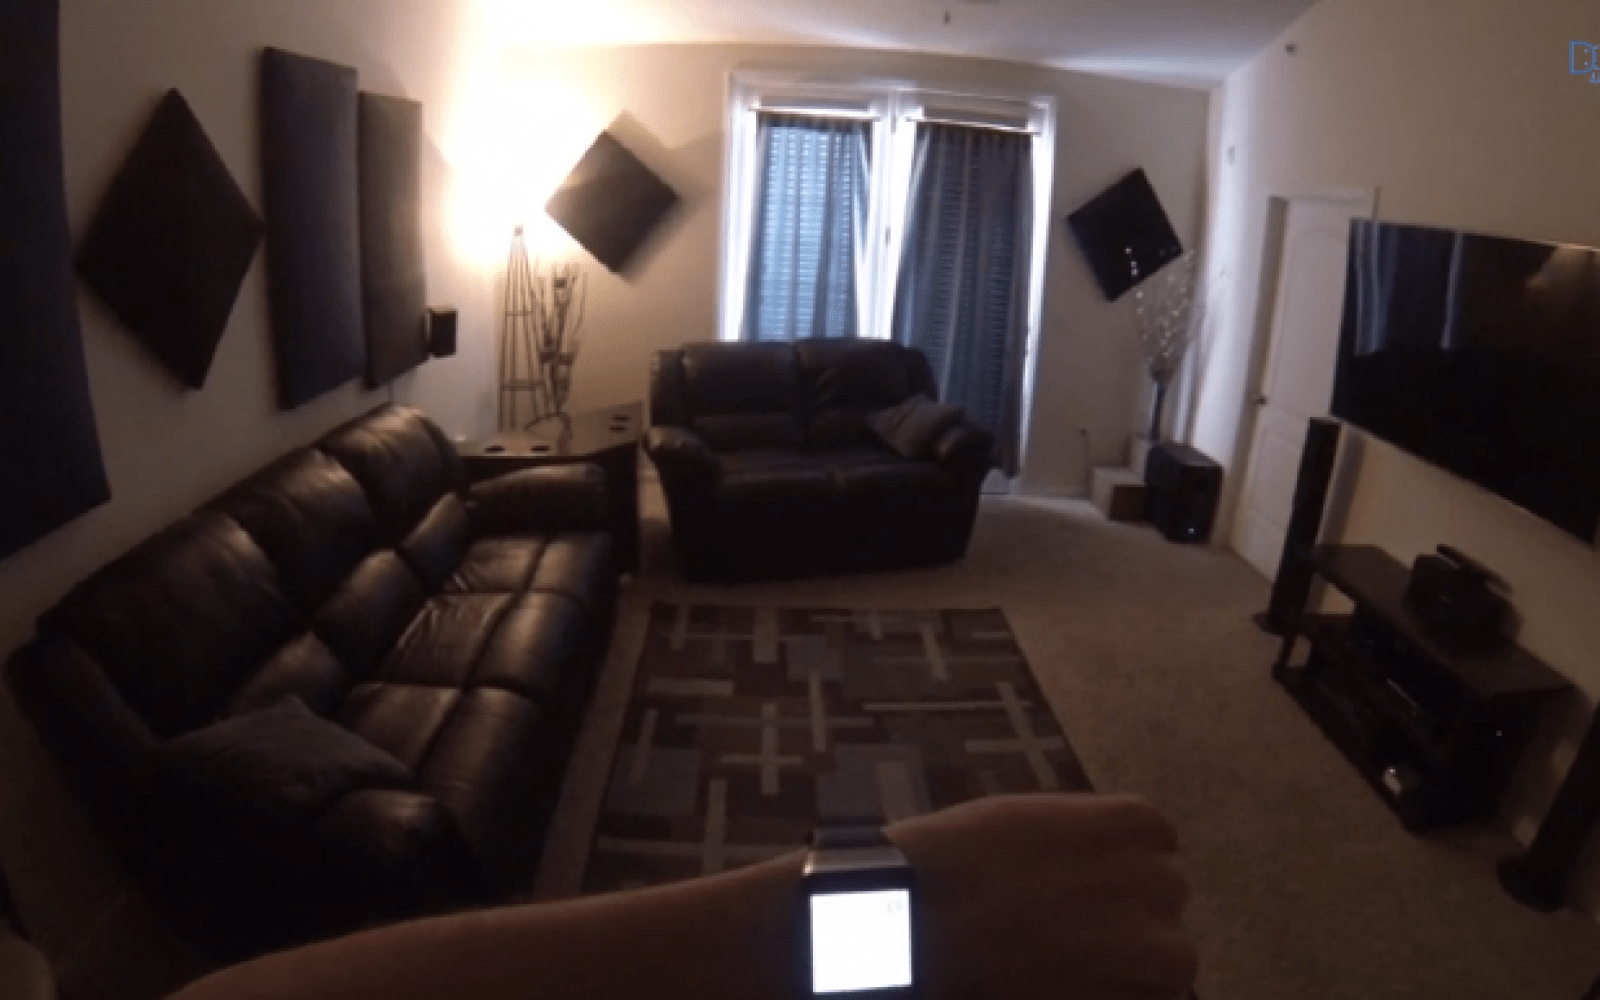 Developer demos slick DroidKC home automation using Android